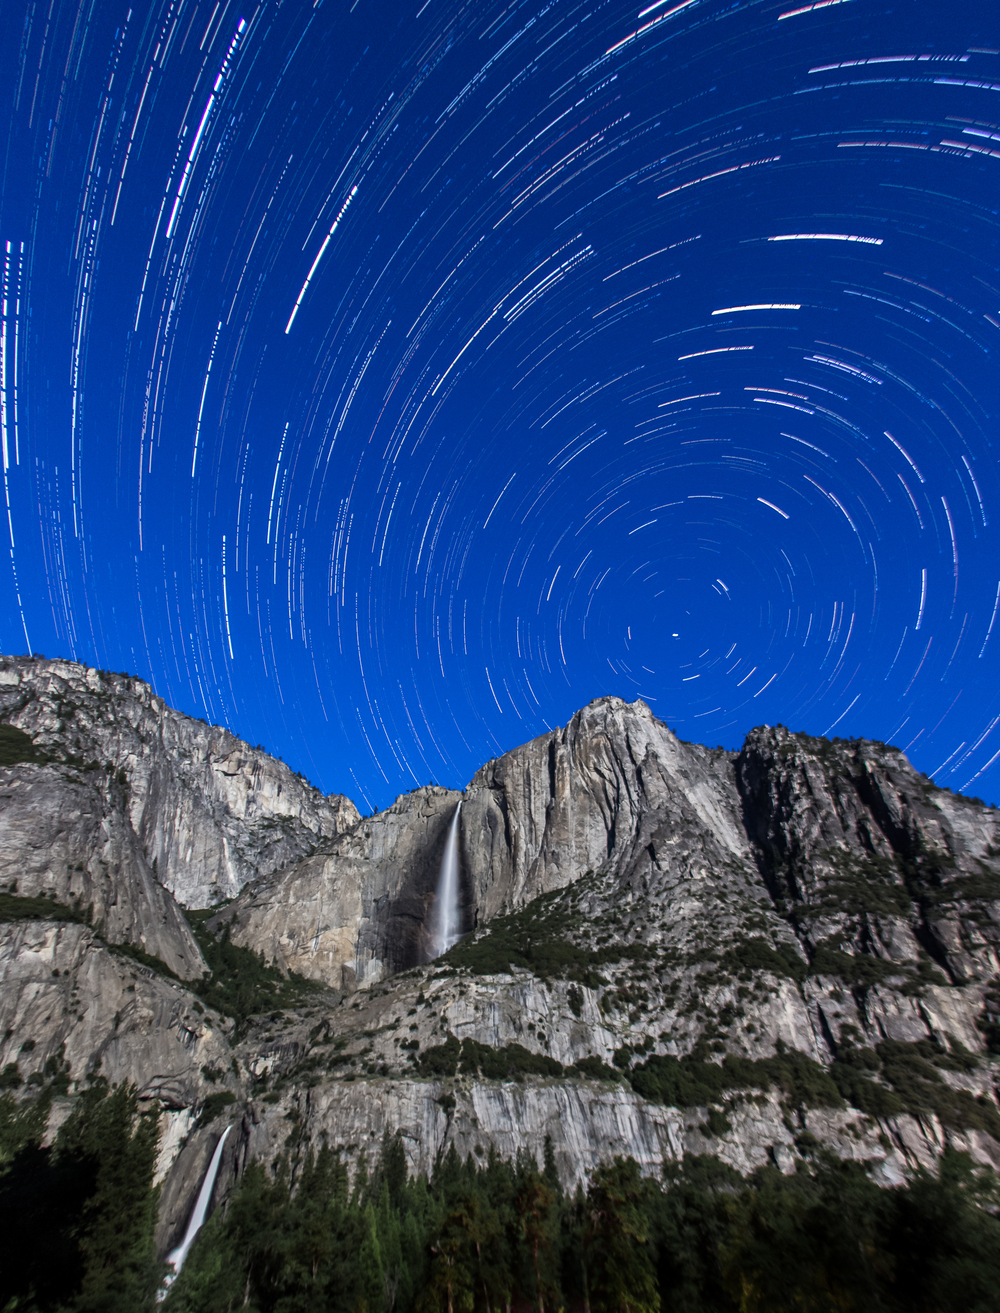 StarStaX_yosemite-8003-yosemite-8175_lighten-2.jpg